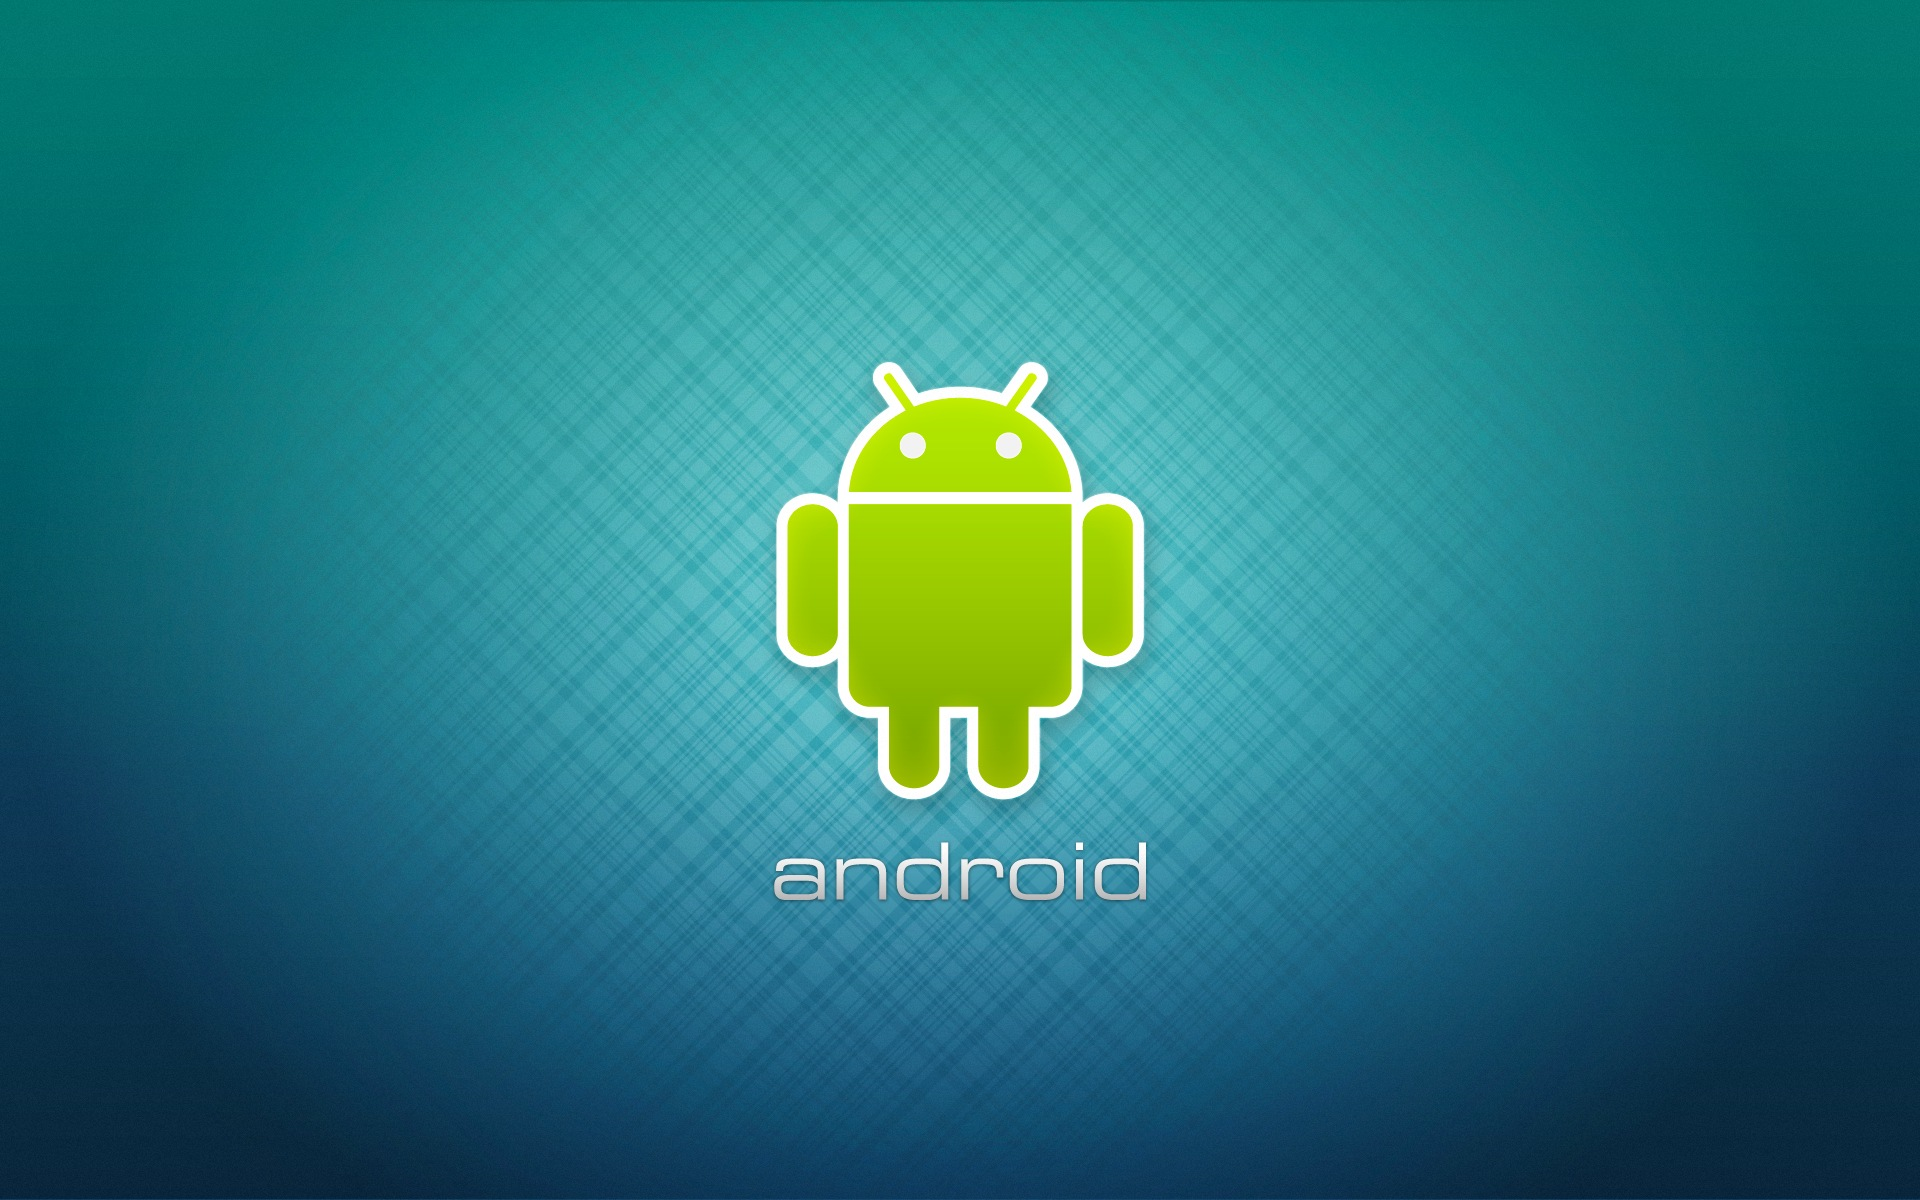 Hd wallpaper android - Theme Bin Blog Archive Android Hd Wallpaper